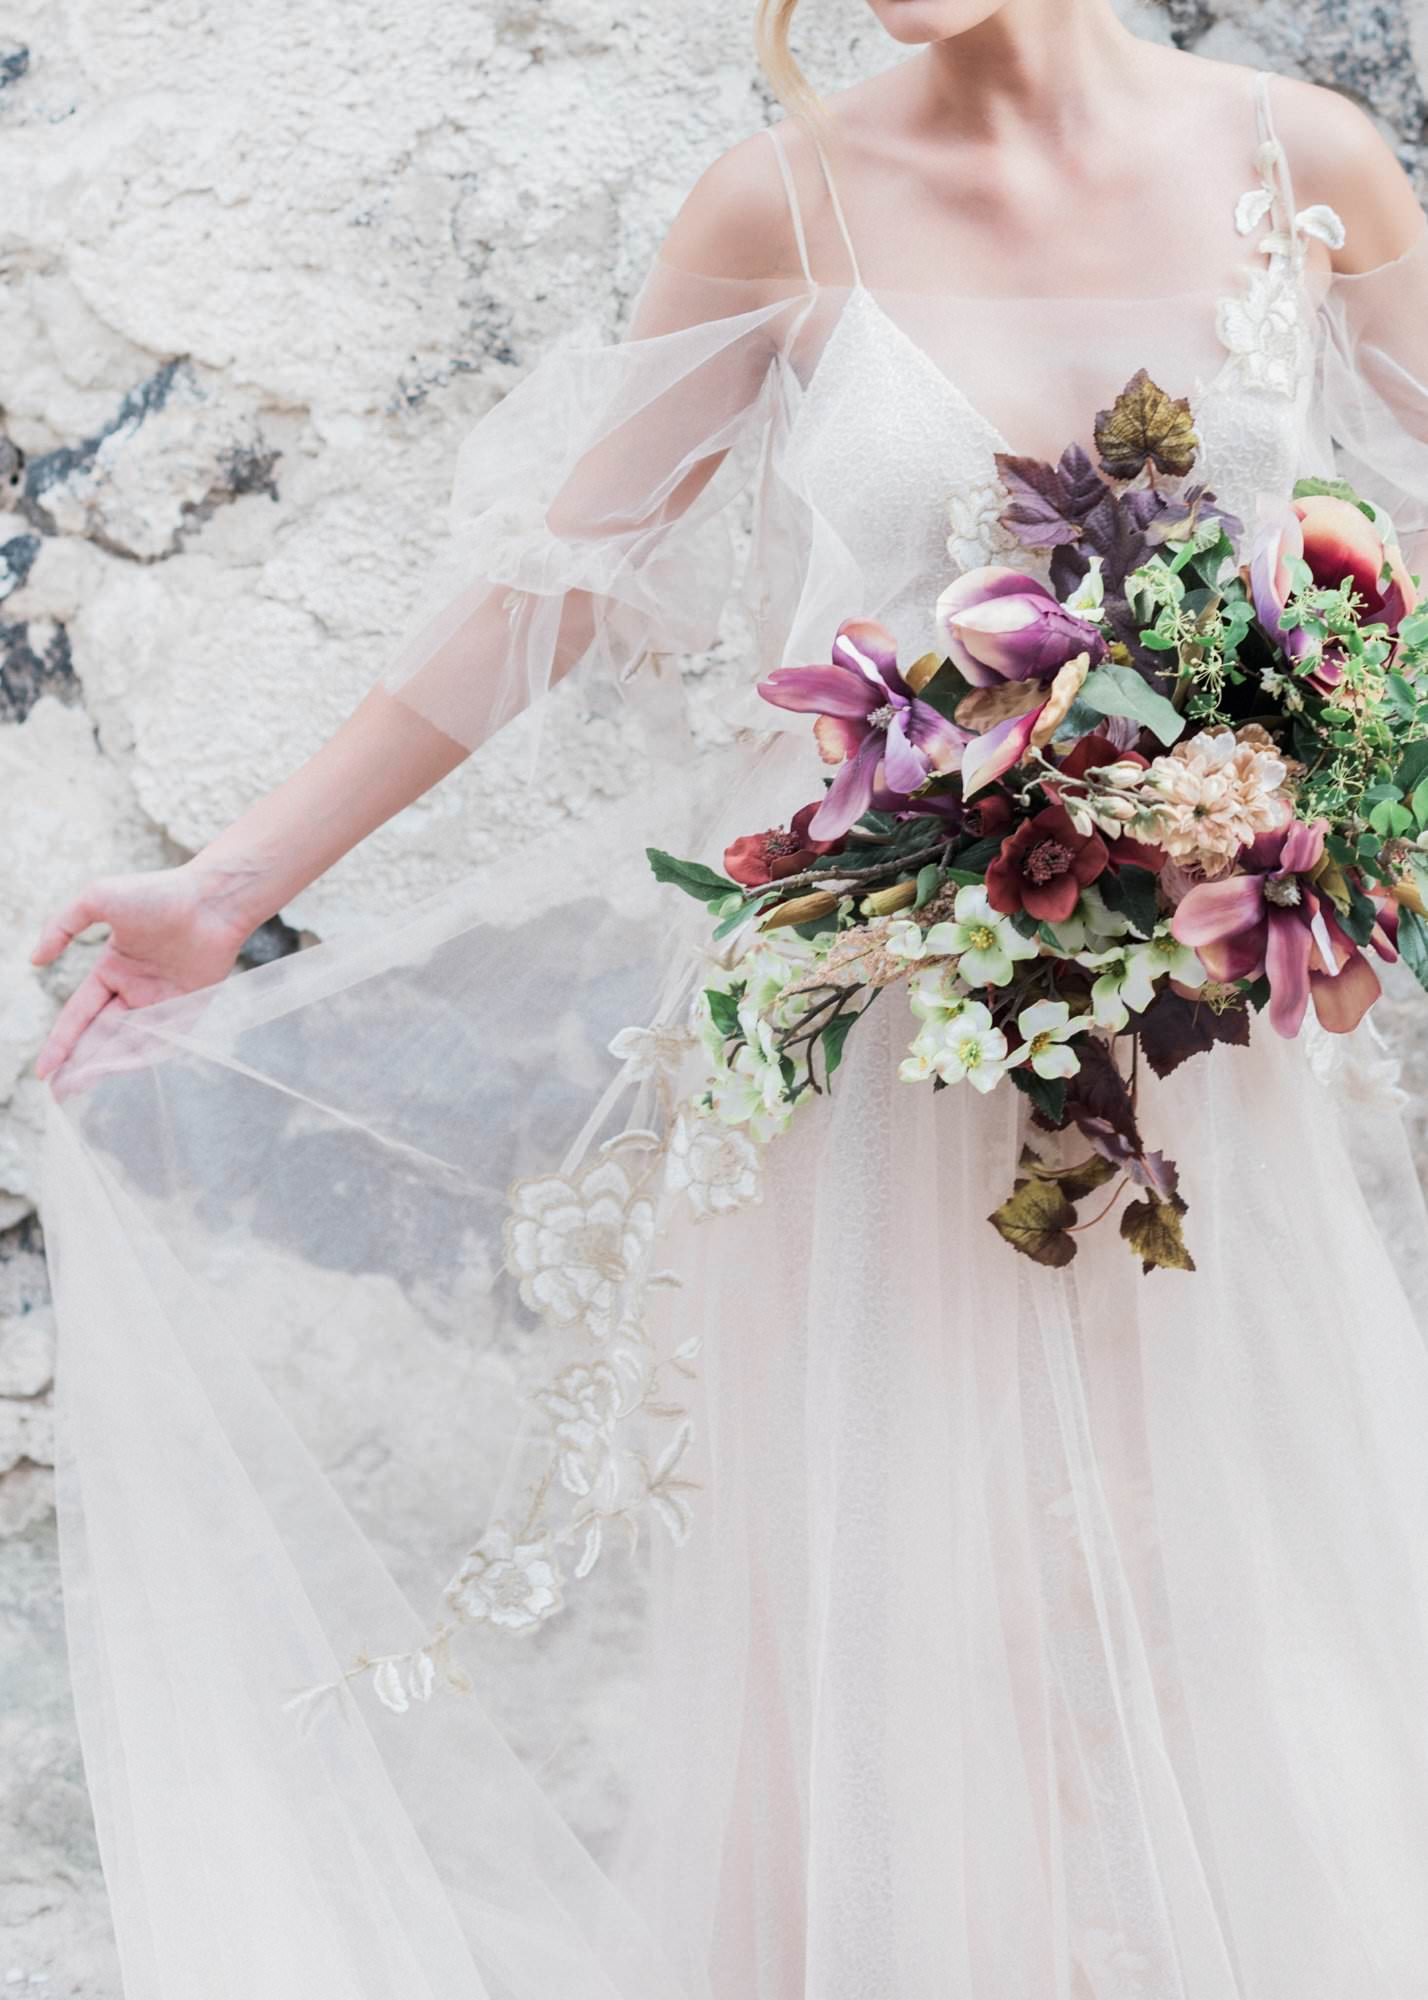 33-bridal-santorini-wedding-photographer-greece-b-v